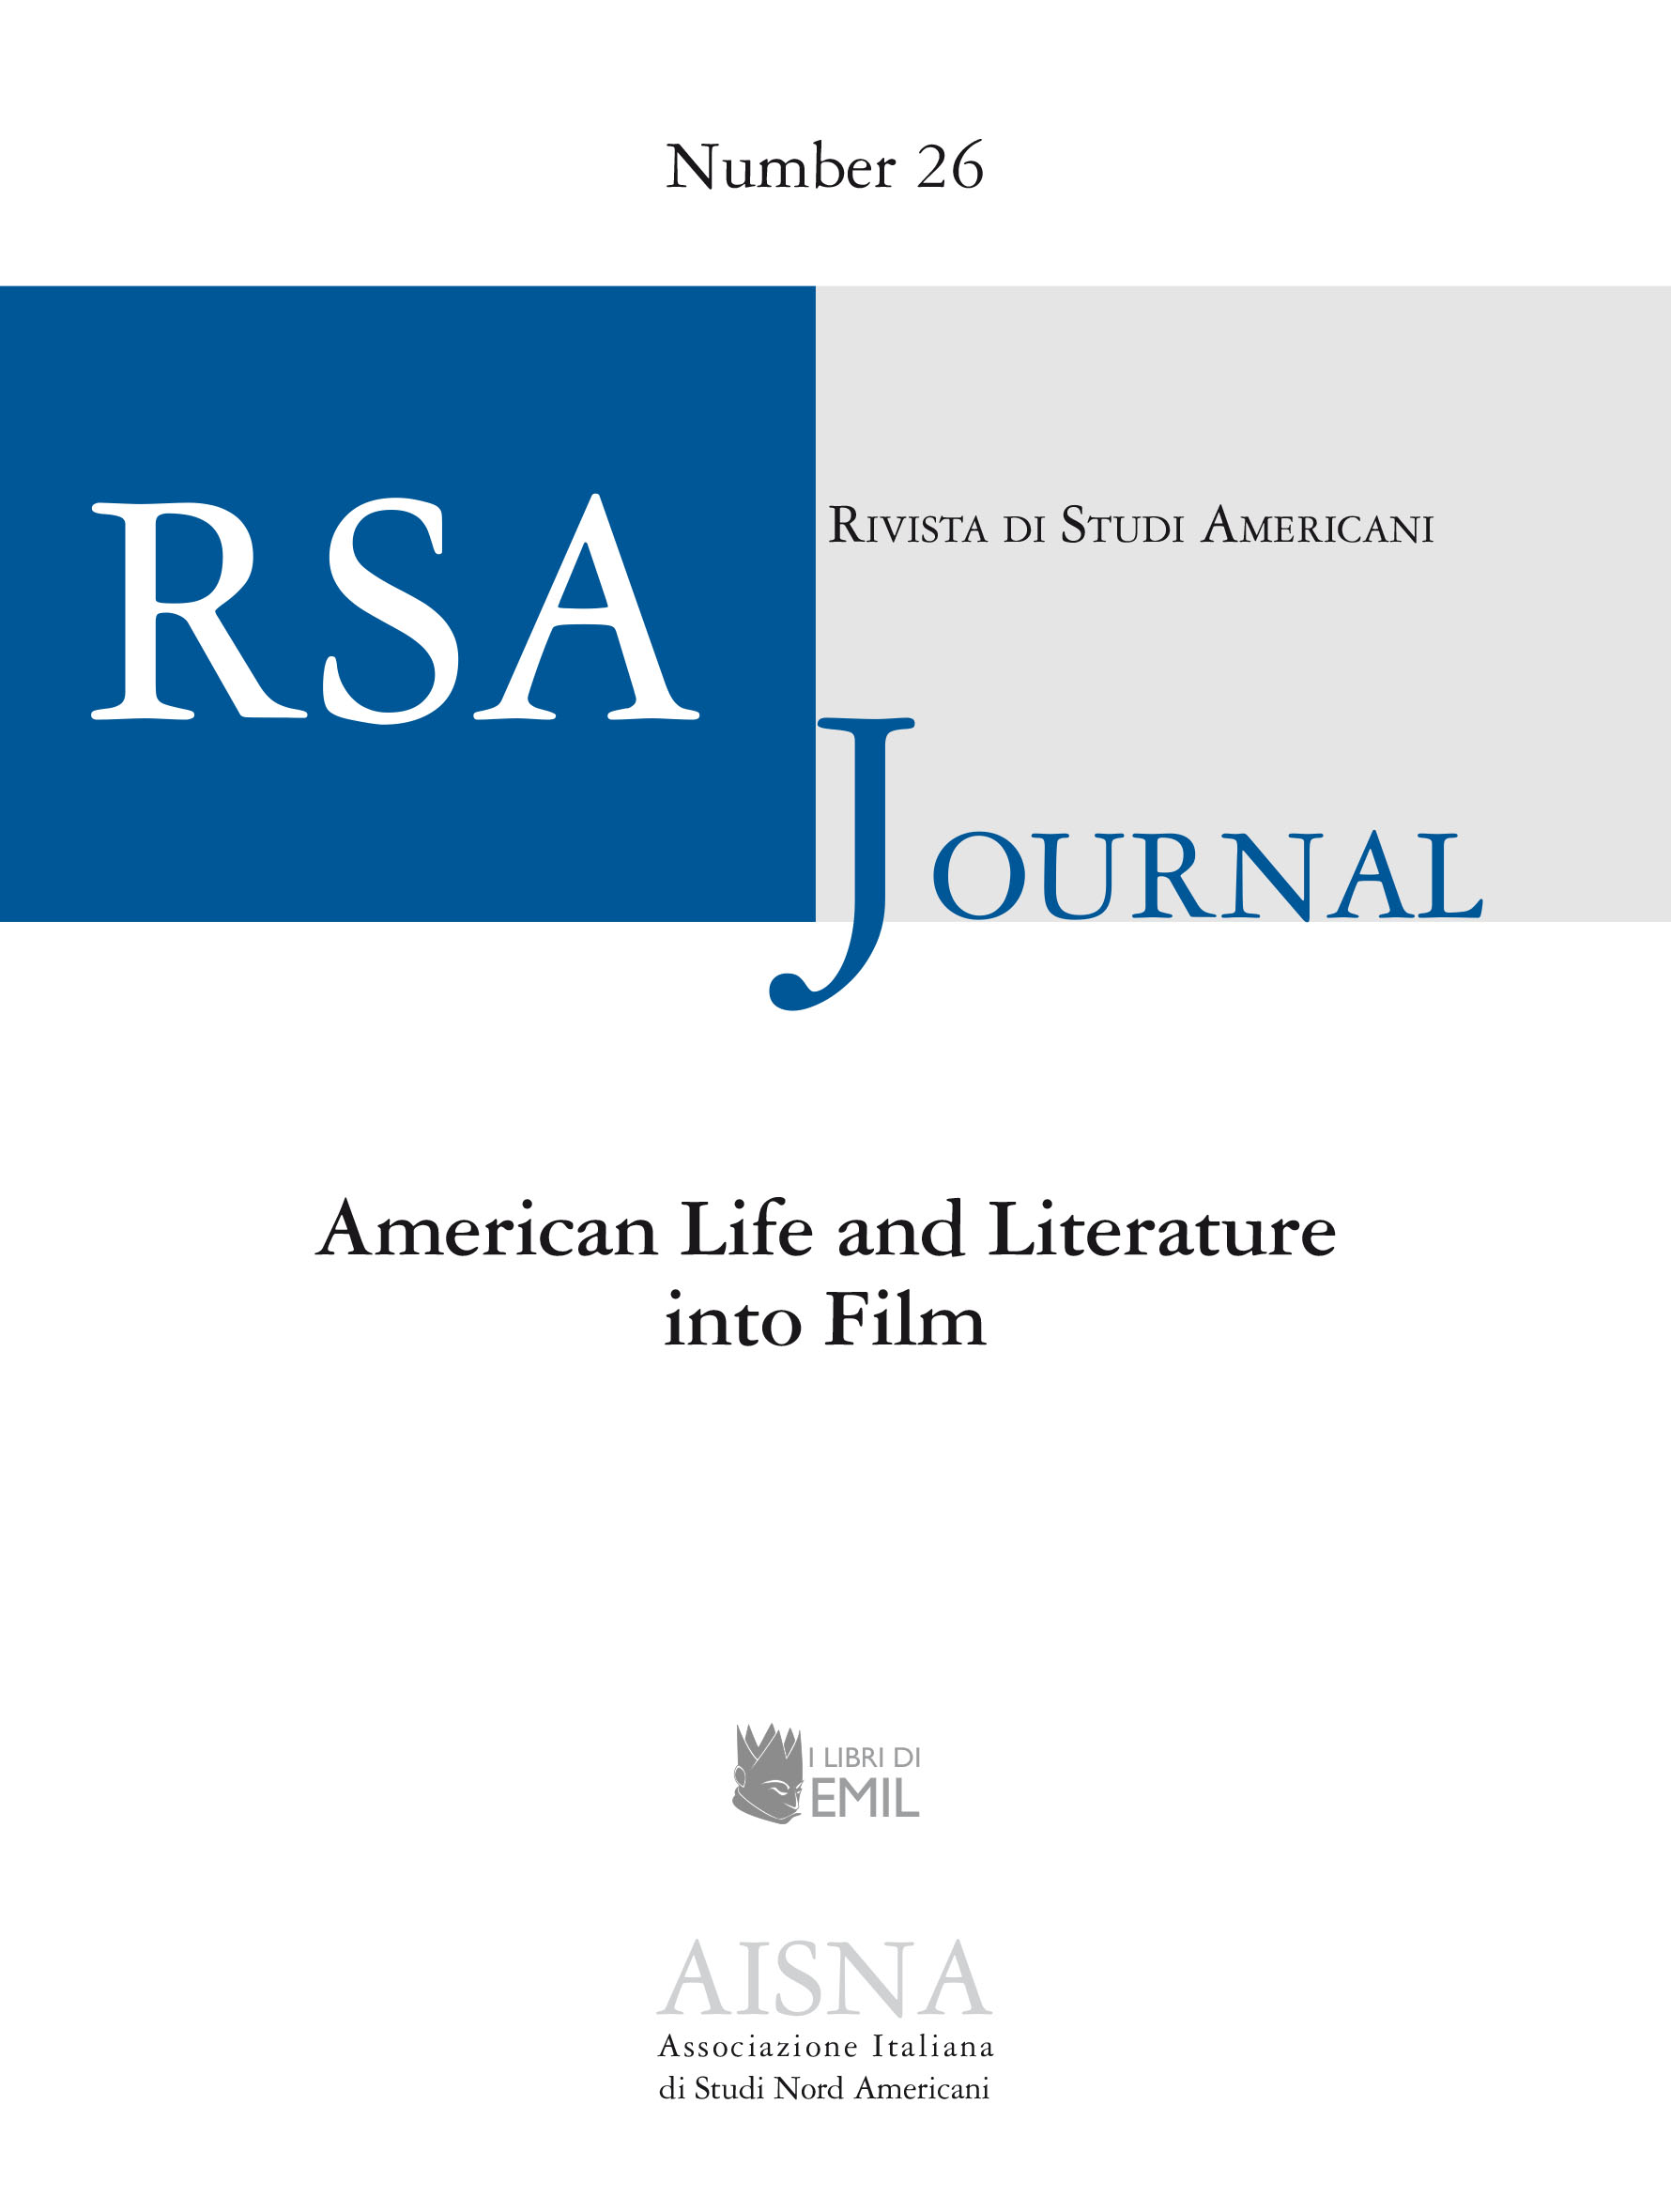 RSA Journal - Rivista Studi Americani, 26